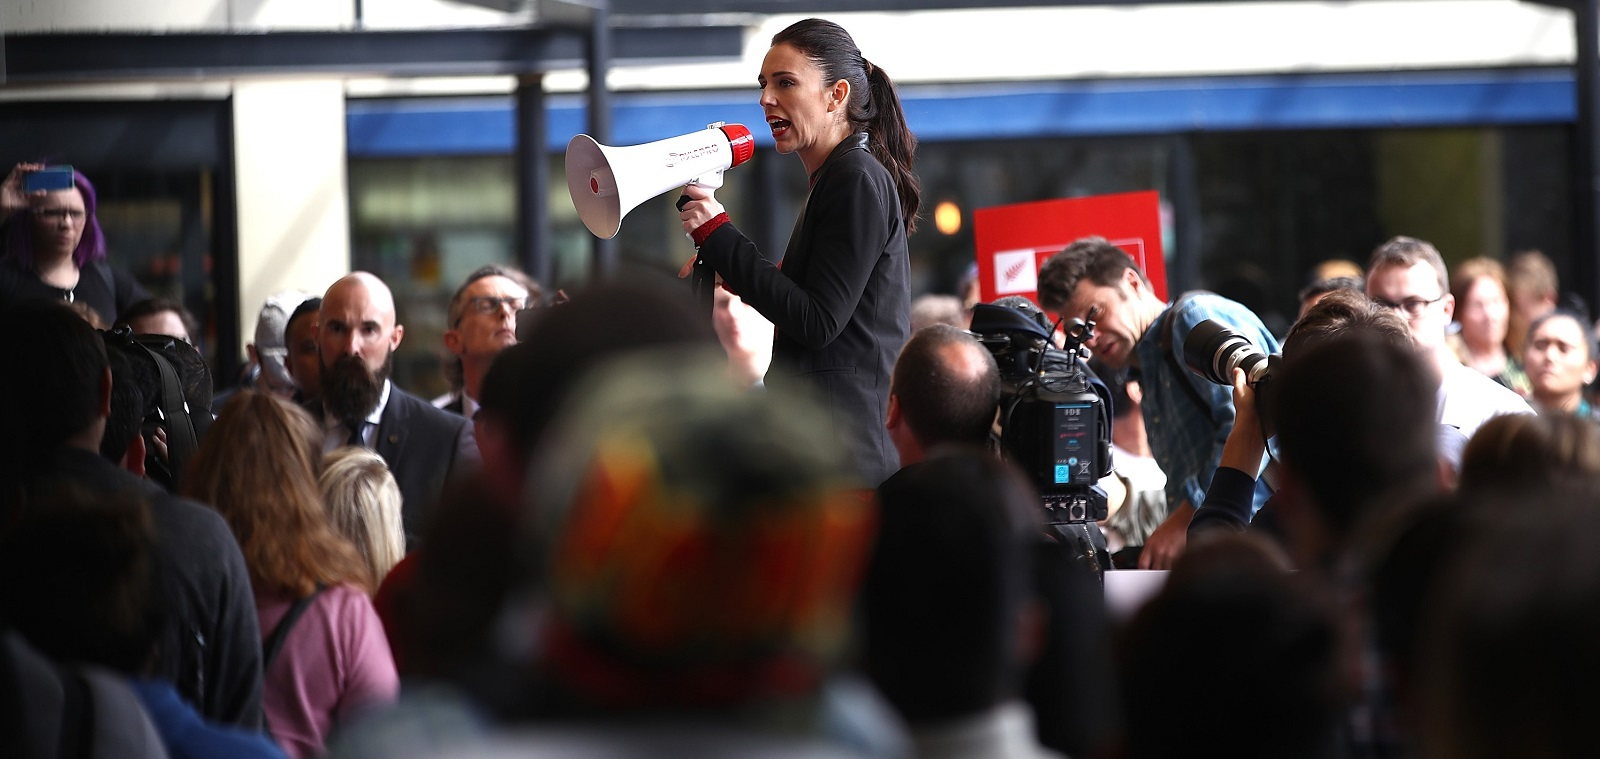 Labour Party leader Jacinda Ardern campaigning in Auckland. (Photo by Phil Walter/Getty Images)